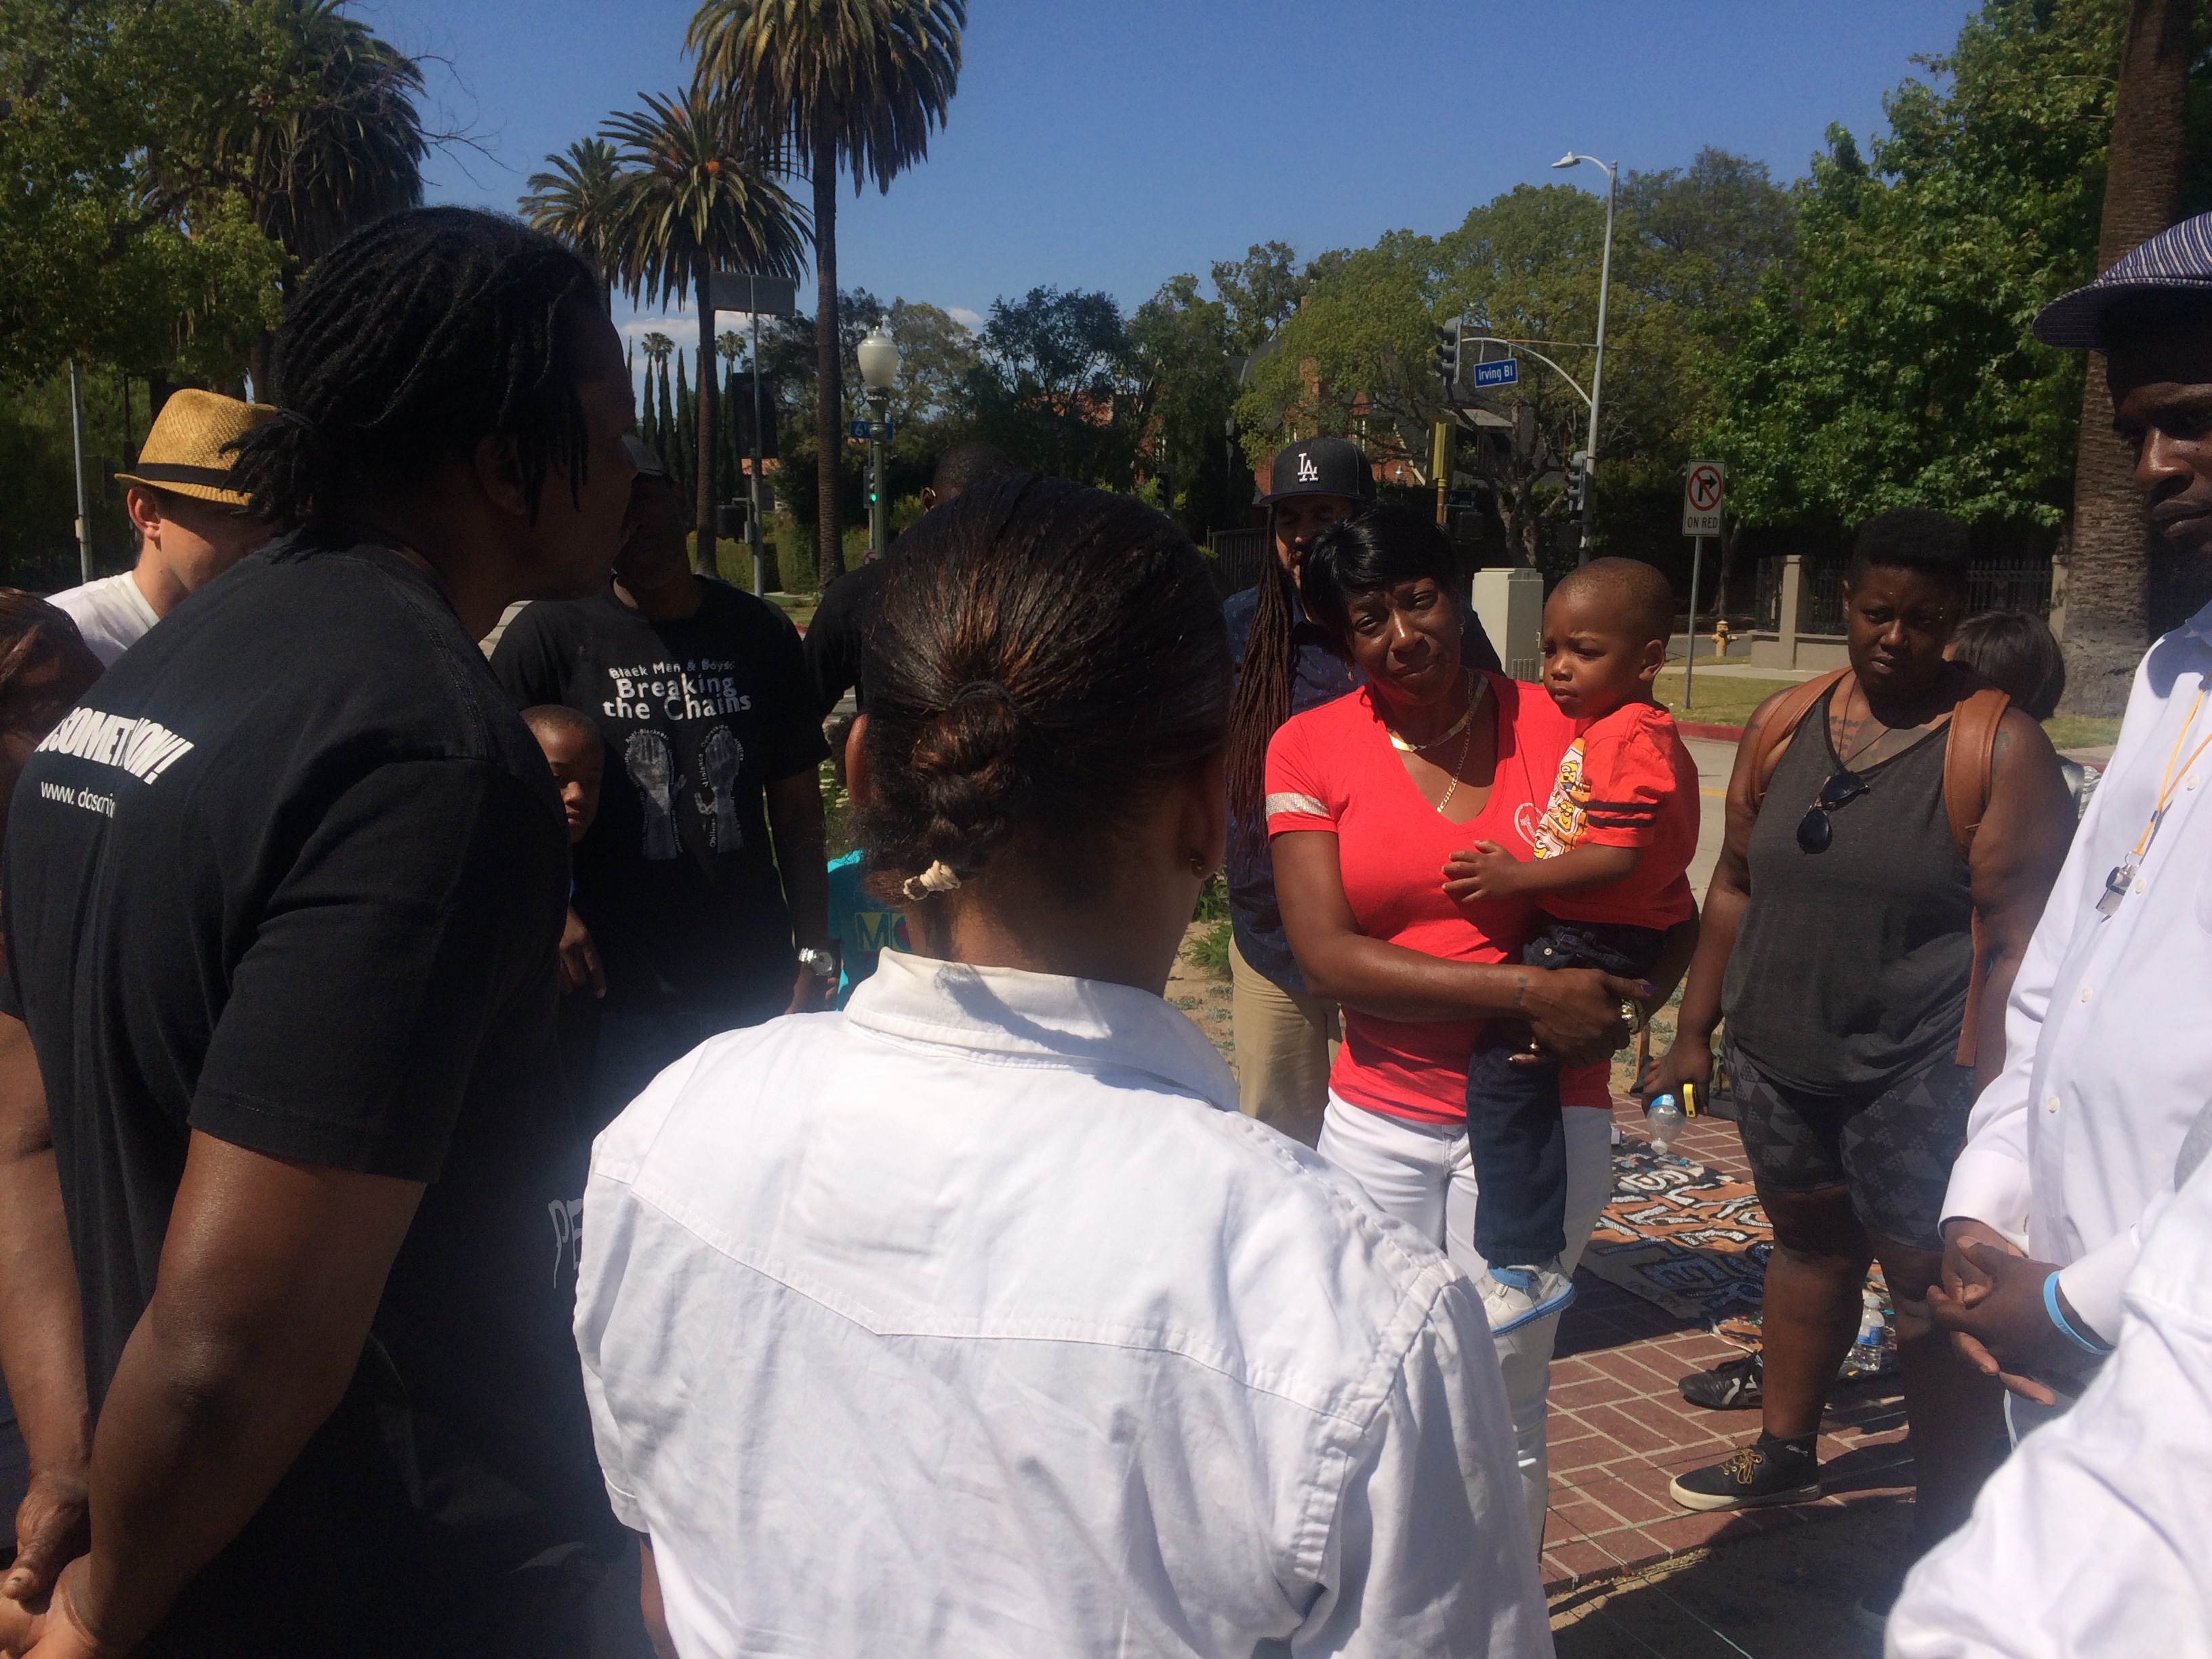 Tritobia Ford, mother of Ezell Ford killed by LAPD in August 2014, joins Black Lives Matter protesters in front LA Mayor Eric Garcetti's home on Sun. Jun 7.